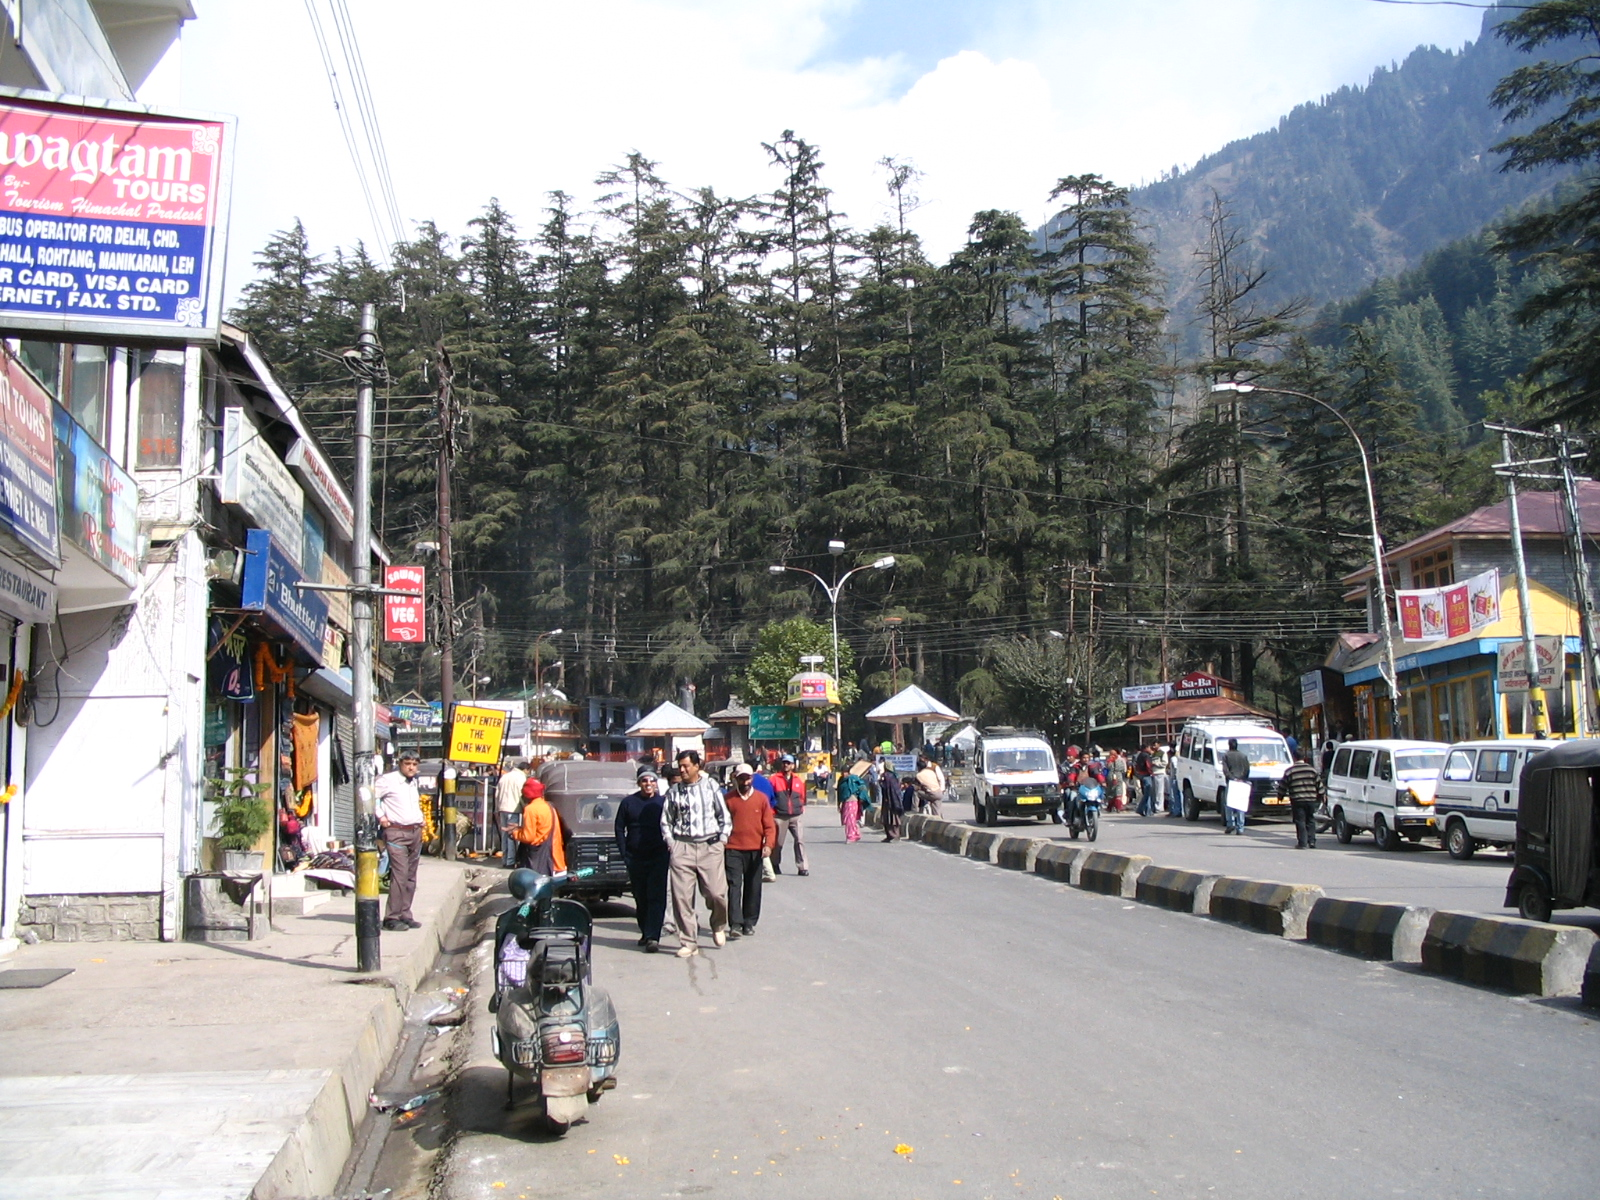 Manali India  city photos gallery : Description Mall street in Manali, India